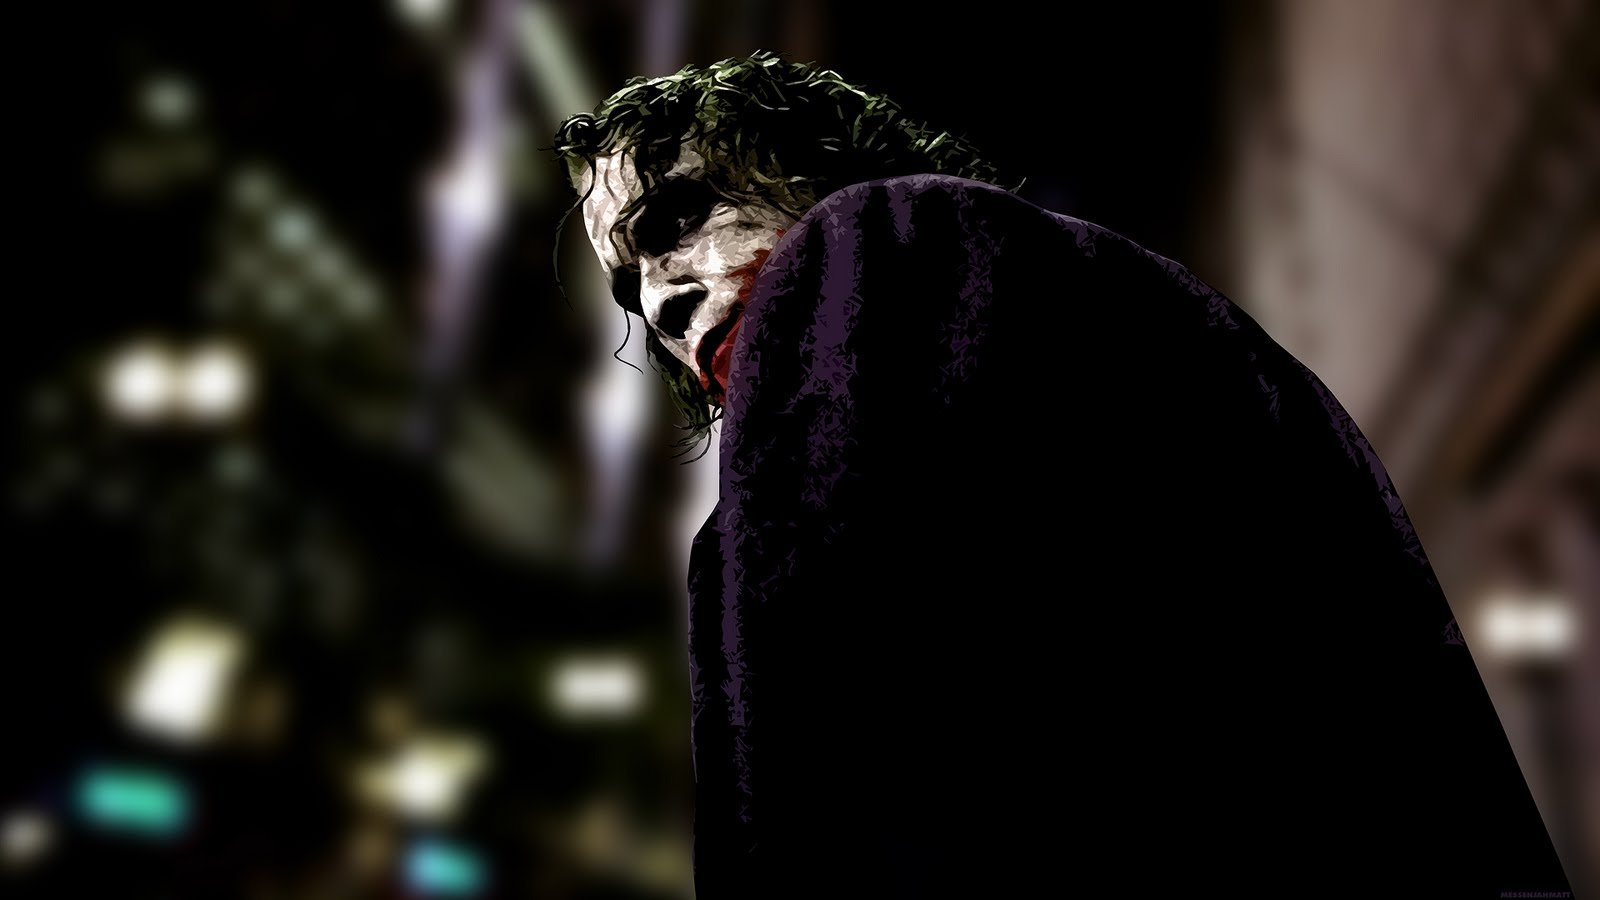 joker wallpaper joker wallpaper joker wallpaper joker wallpaper joker 1600x900